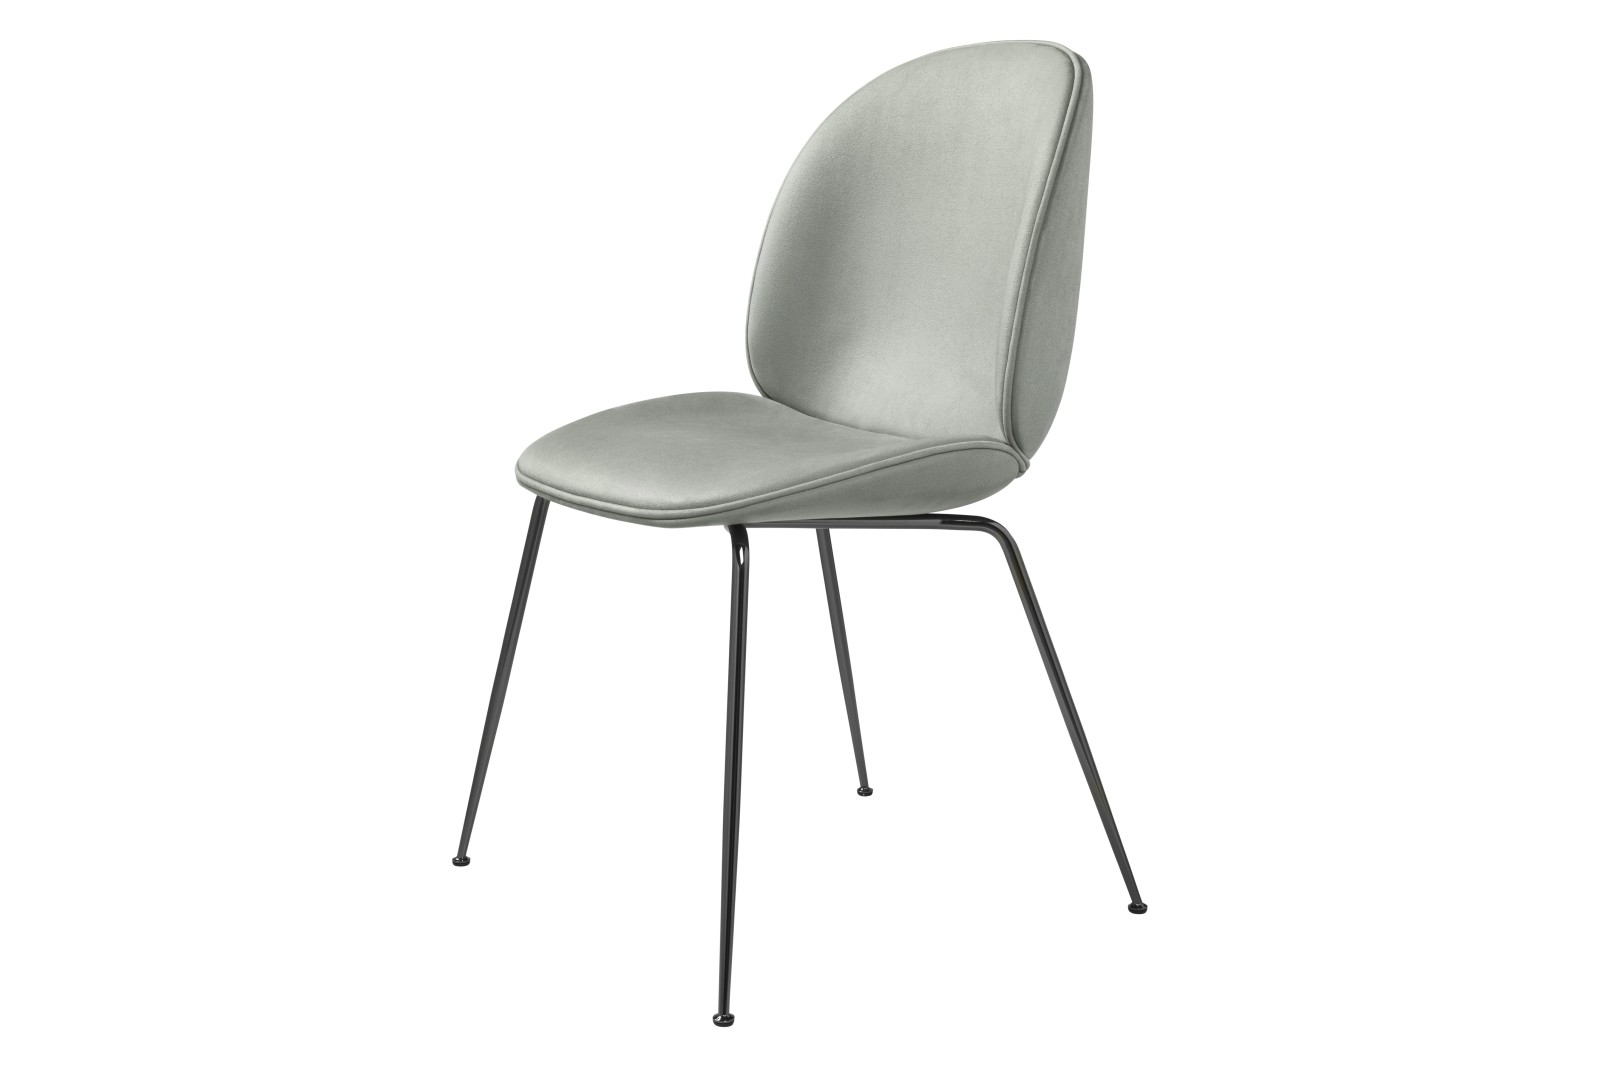 Beetle Dining Chair - Fully Upholstered, Conic base Gubi Metal Black Chrome, Price Grp. 04 CM8